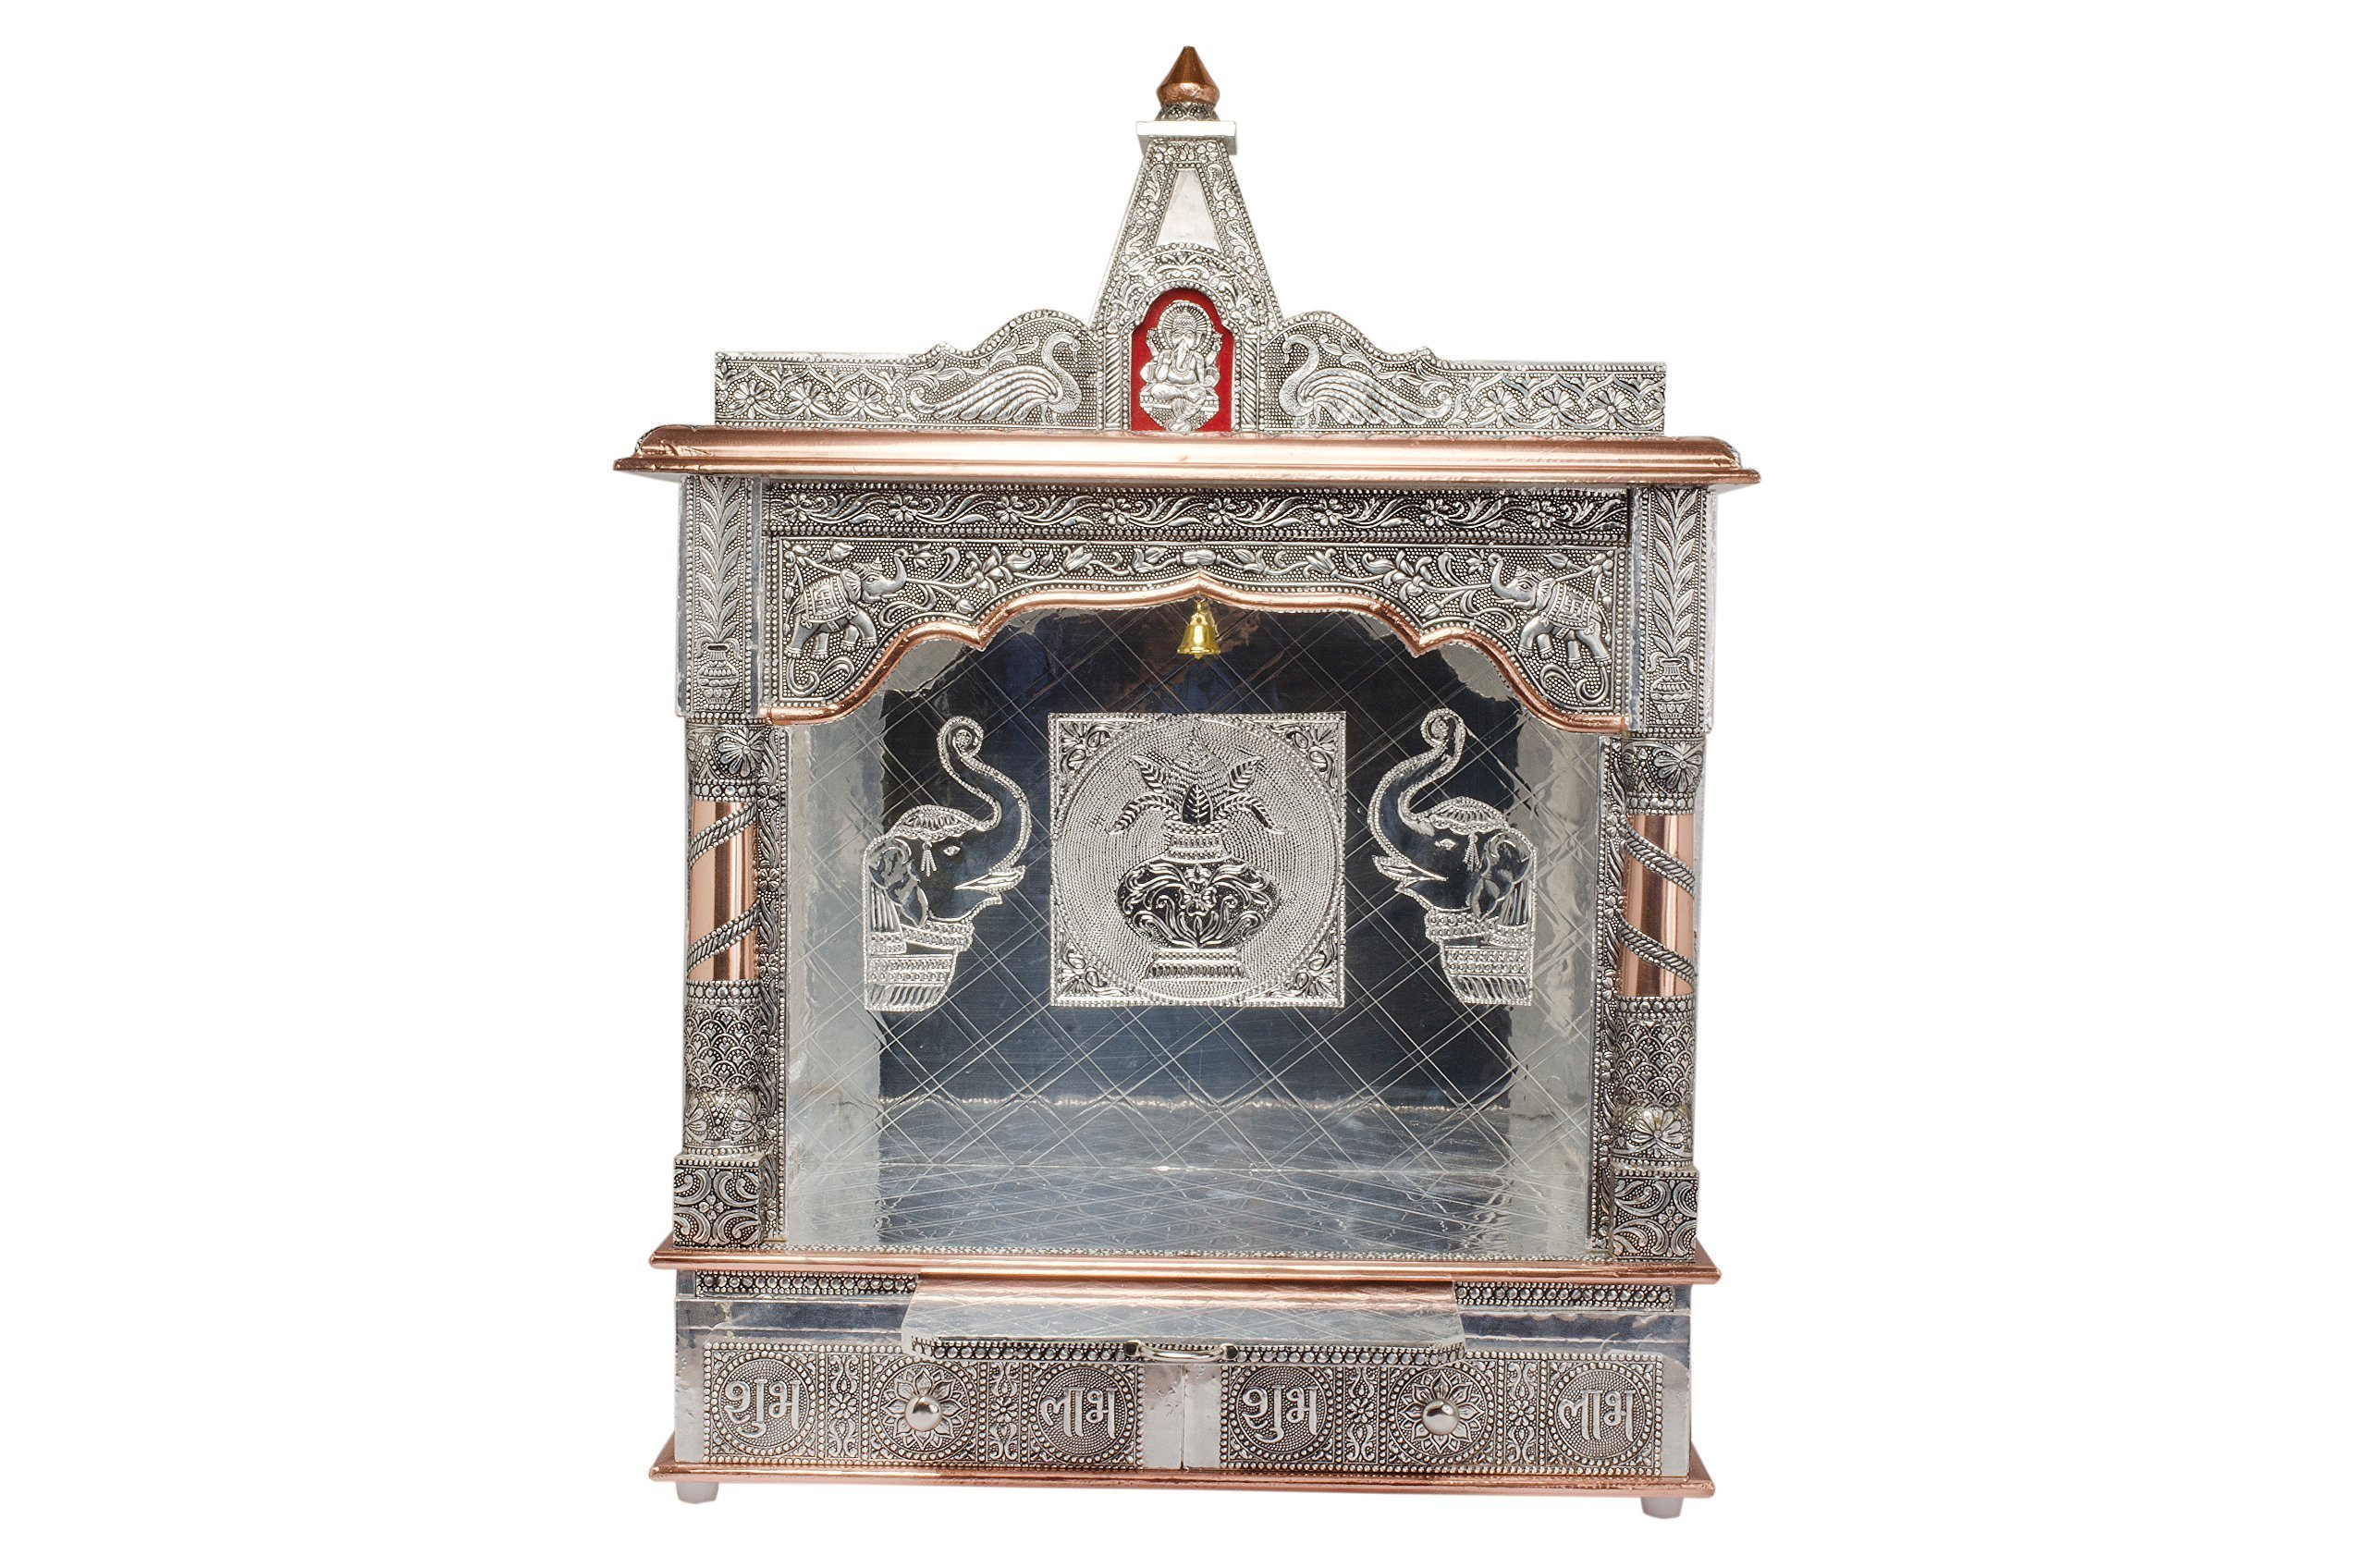 Movie Time Vdieo 59083-OX Hindu Puja Mandir/Temple/Alter, Aluminum Plated with Bell